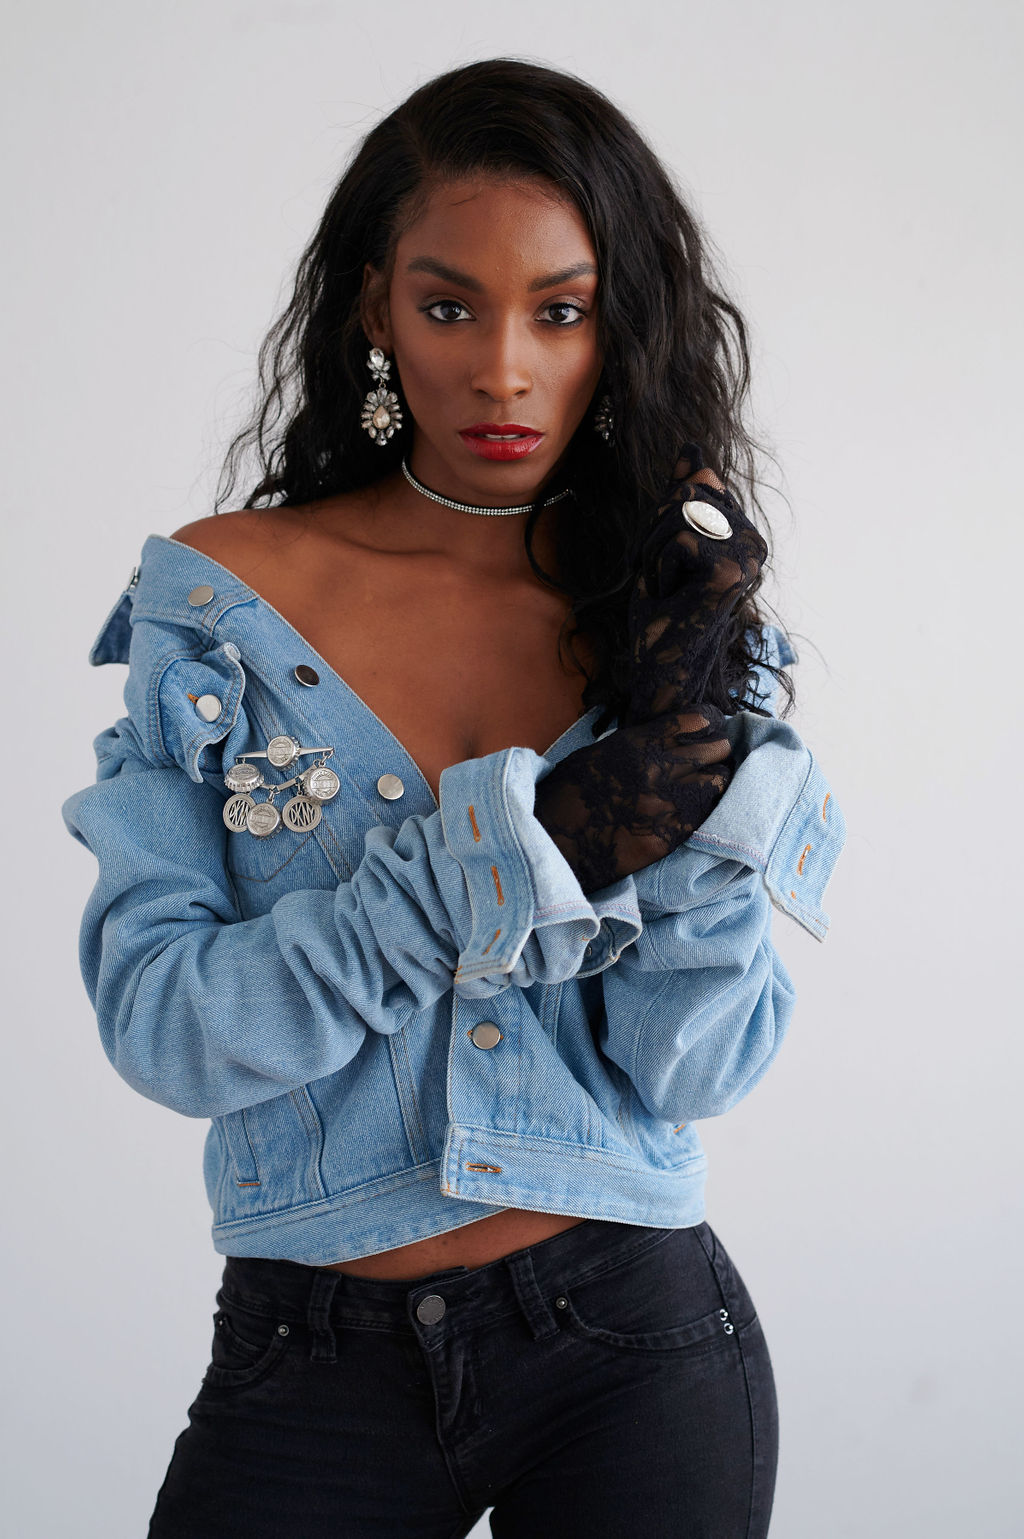 Annjulia Smalls In Y Project-styled by melissa-lcm-sheldon botler photography-denim jacket-elongated sleeves-high fashio